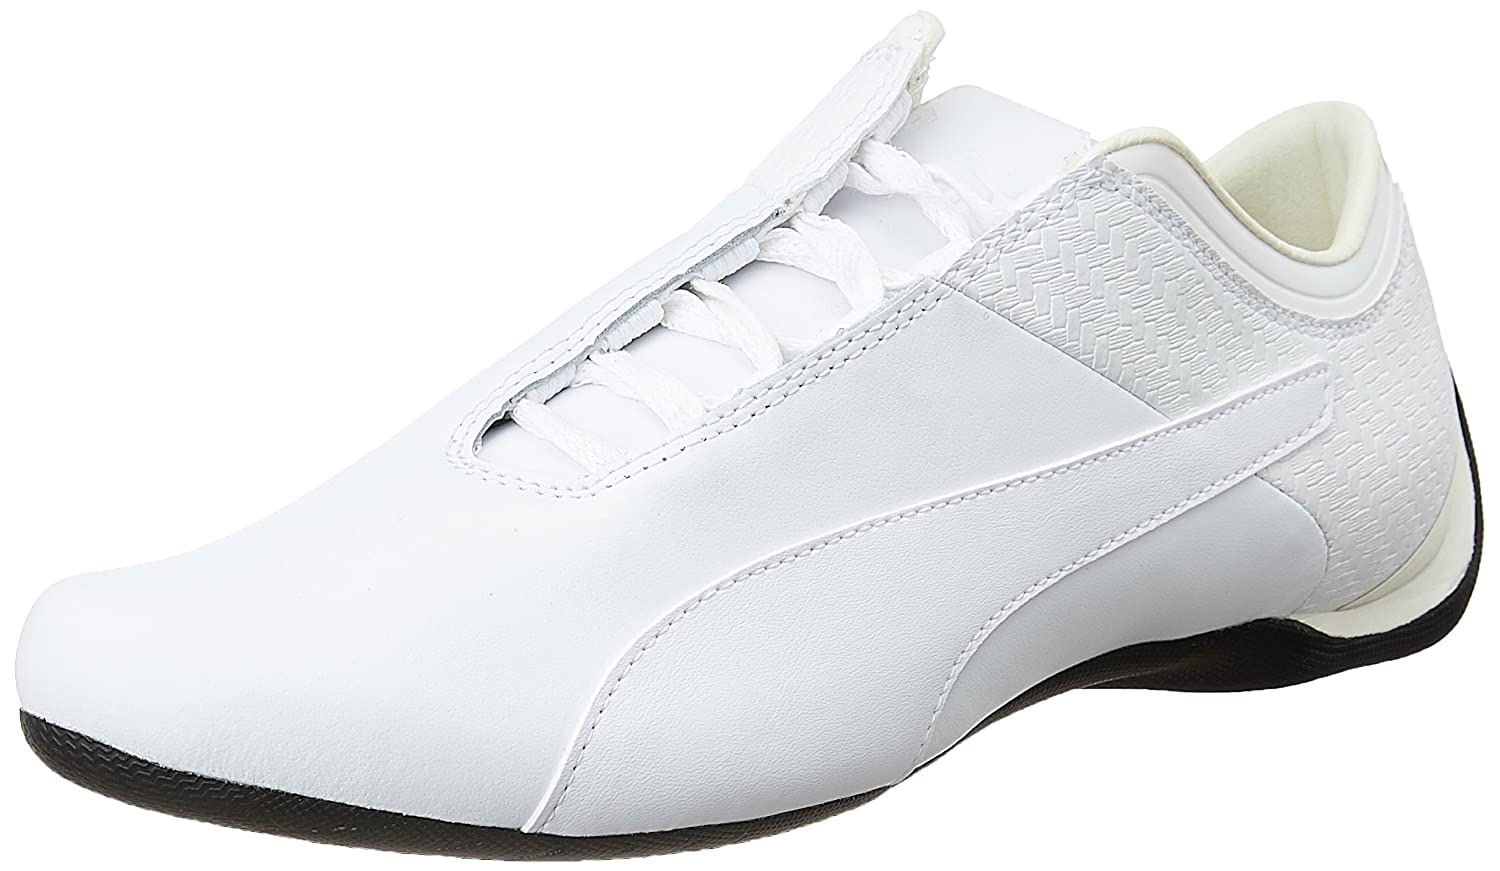 Puma Men s Future Cat M1 Citi Pack Puma White Leather Sneakers - 11 UK India  (46 EU)  Buy Online at Low Prices in India - Amazon.in 08a8c3074